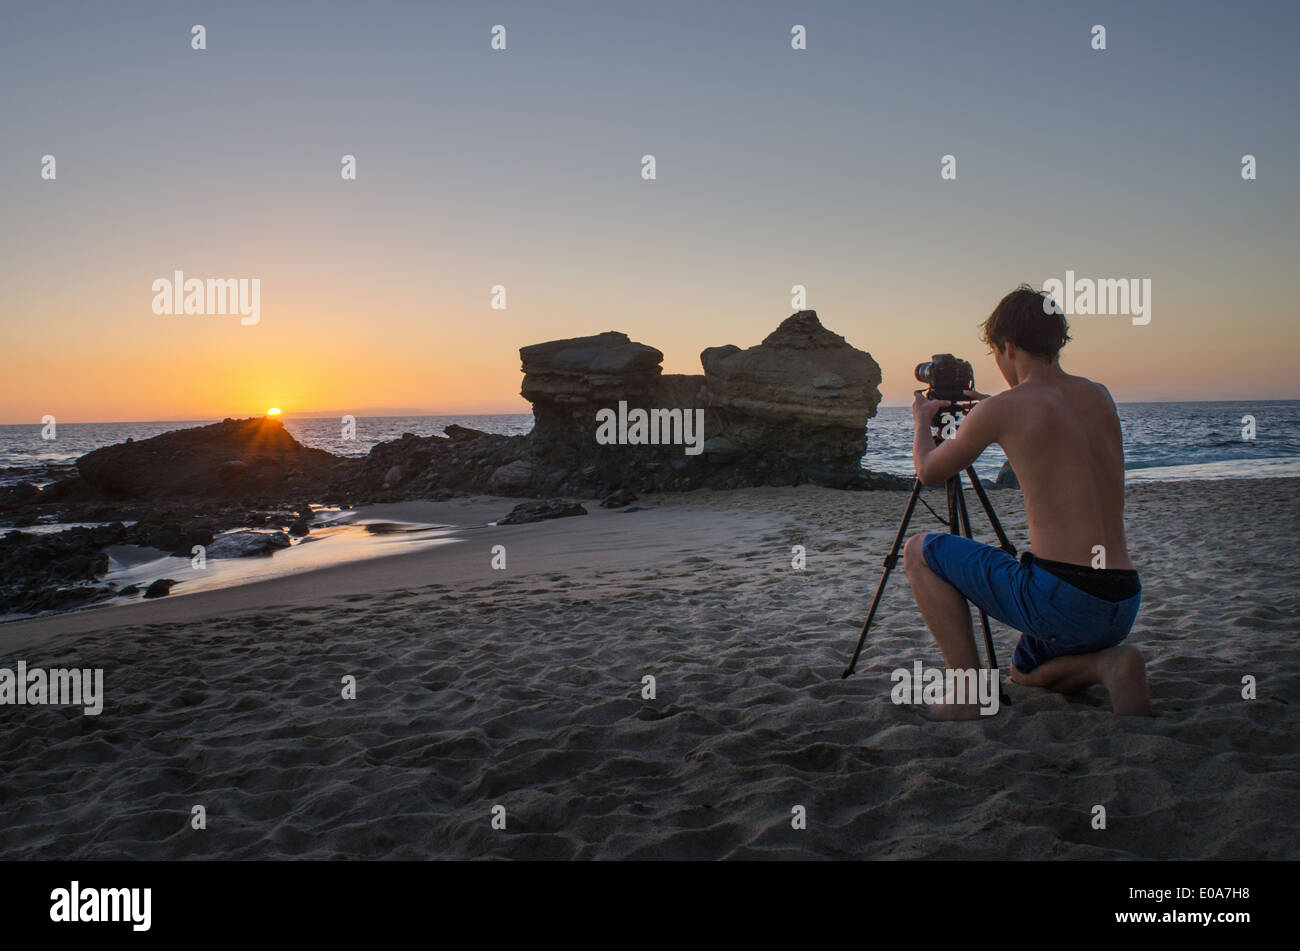 Teenager nehmen Fotos, Table Rock Beach, Laguna Beach, Kalifornien, USA Stockbild